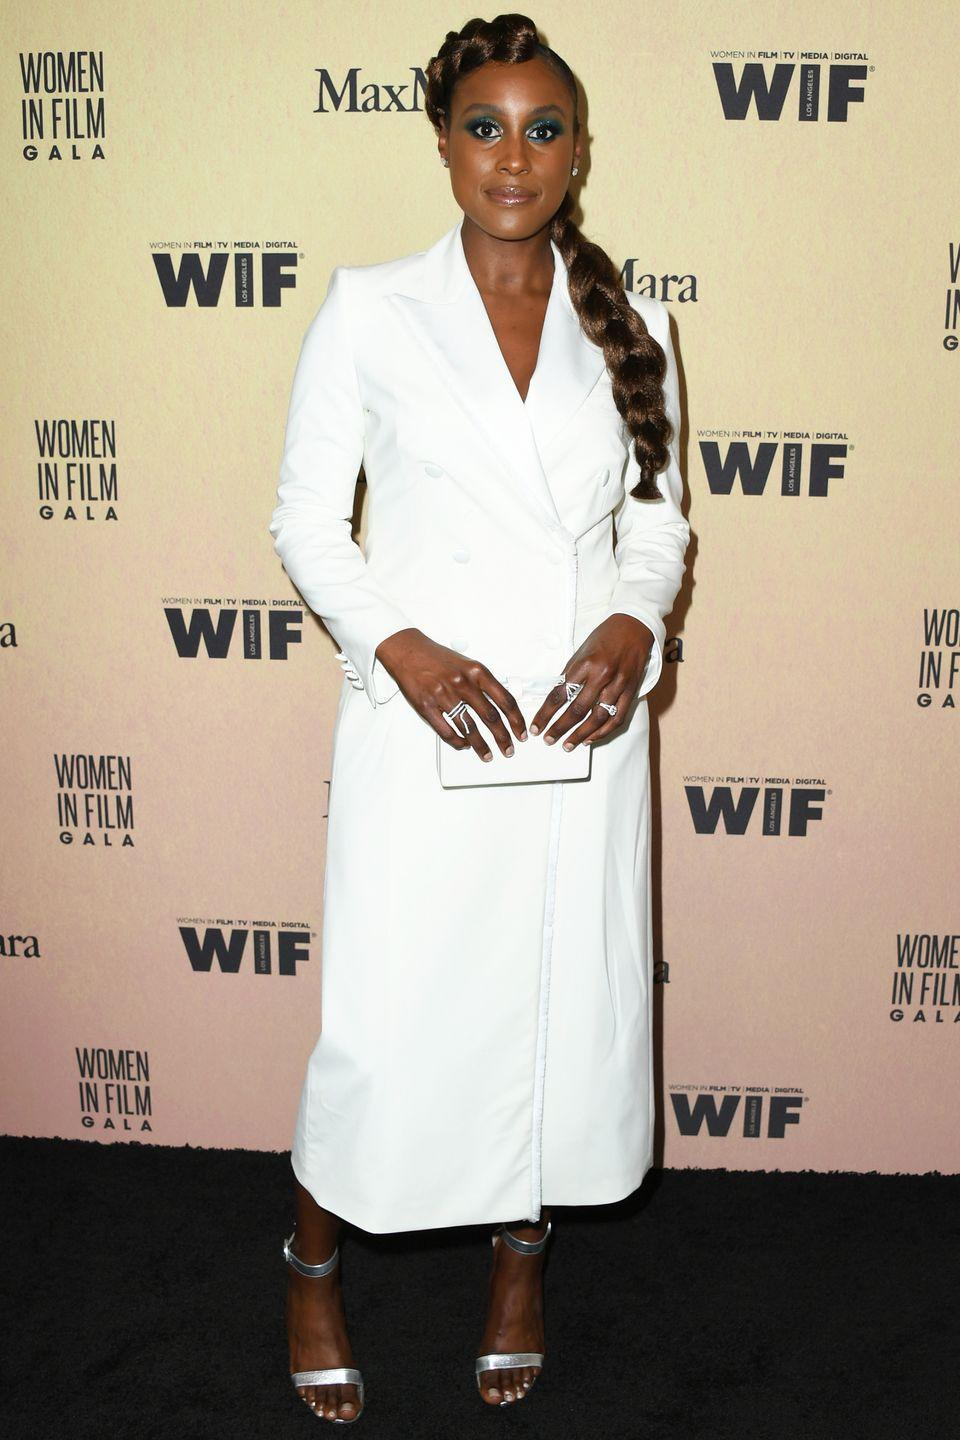 """<p>Who: Issa Rae</p><p>When: June 12, 2019</p><p>Wearing: Max Mara </p><p>Why: """"As women [...] we're kinda conditioned, socially, to be humble,"""" Issa Rae said during her acceptance <a href=""""https://www.instagram.com/p/Byq-OsvAMjf/"""" rel=""""nofollow noopener"""" target=""""_blank"""" data-ylk=""""slk:speech"""" class=""""link rapid-noclick-resp"""">speech</a> for the Emerging <em>Entrepreneur</em> Award at the Women in Film Gala in Beverly Hills, California. She continued with a message praising female confidence, which was just as powerful as her power suit dress. </p>"""